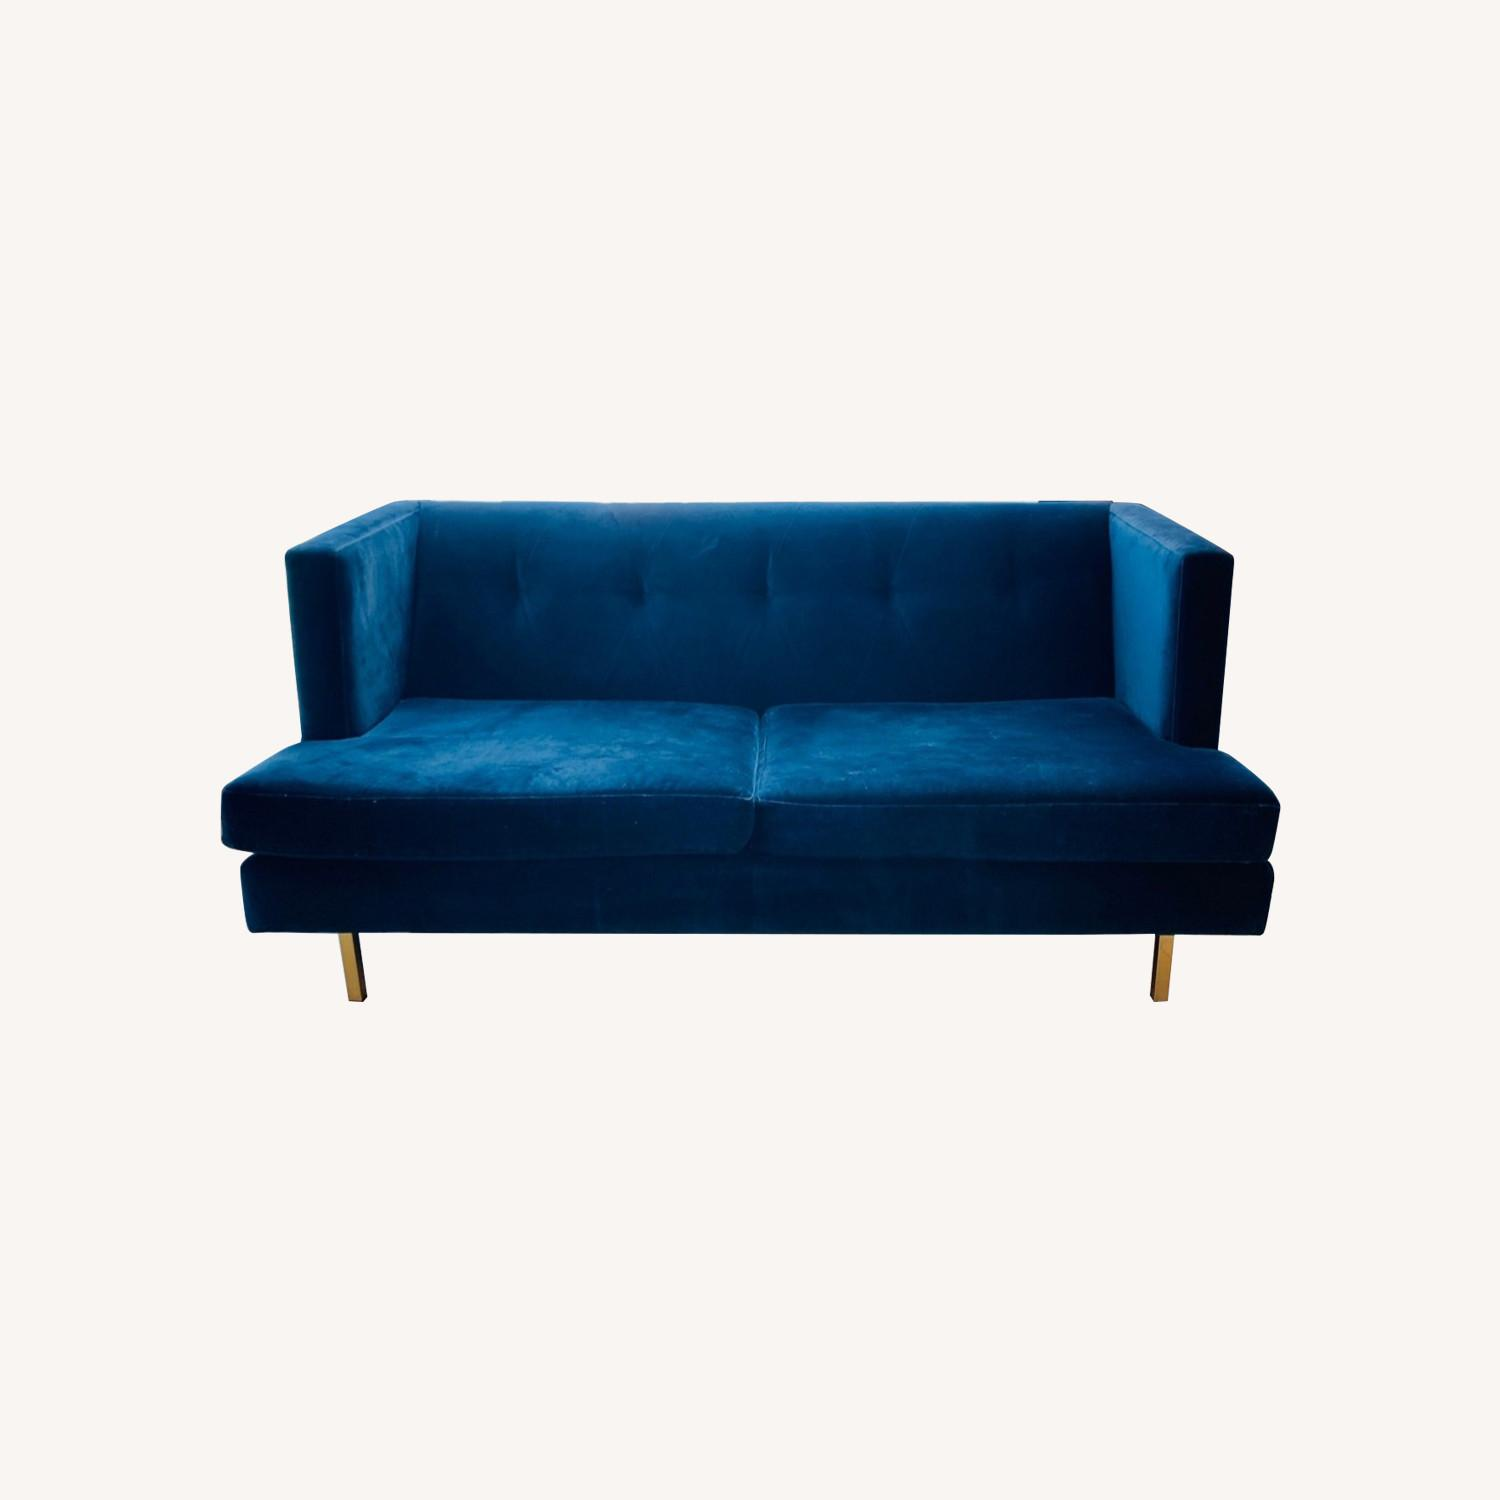 CB2 Avec Sofa with Brass Legs - image-0